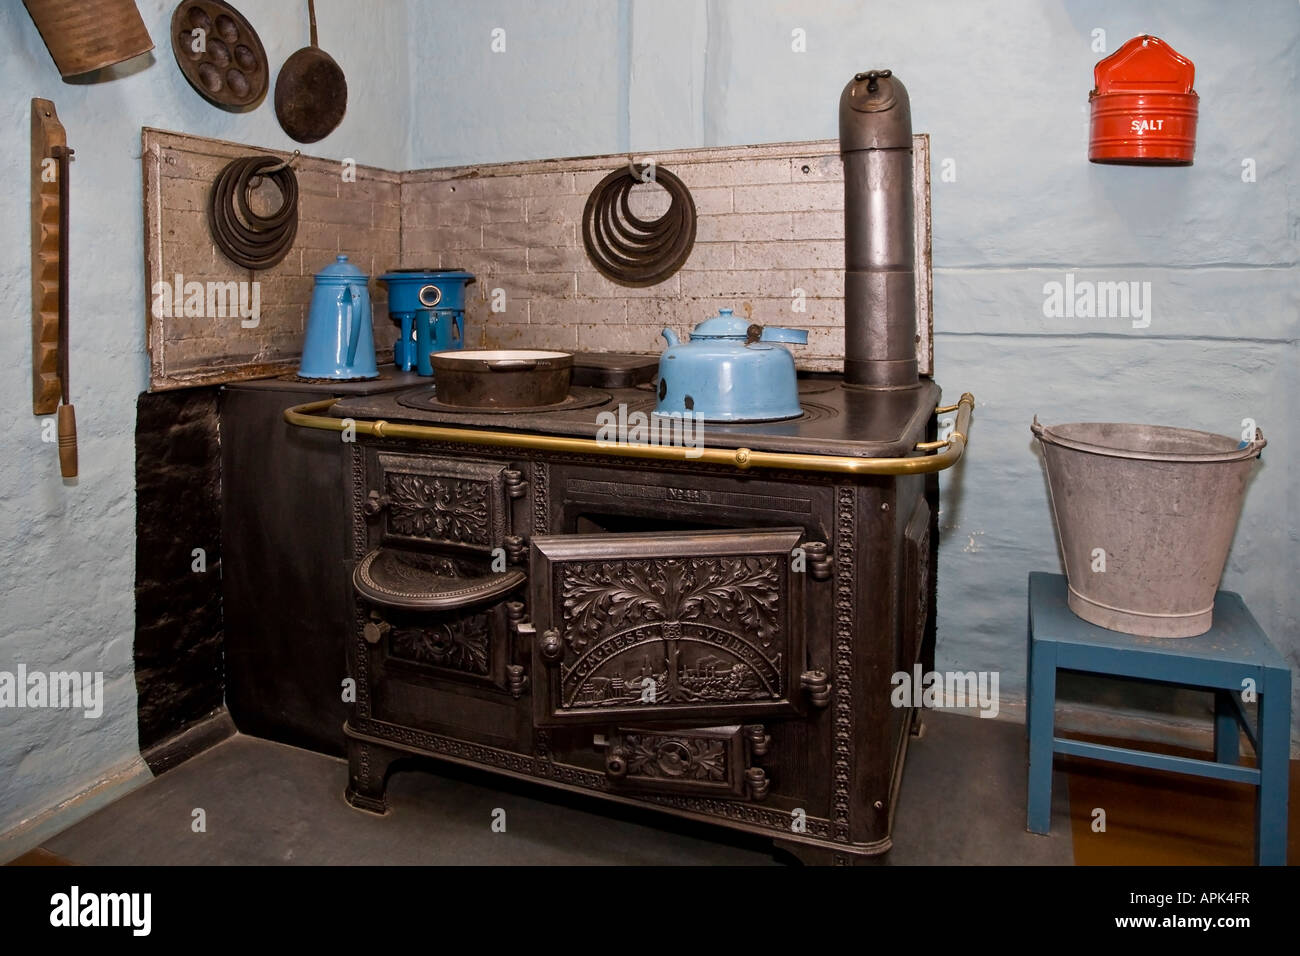 Awesome Old Kitchen Range